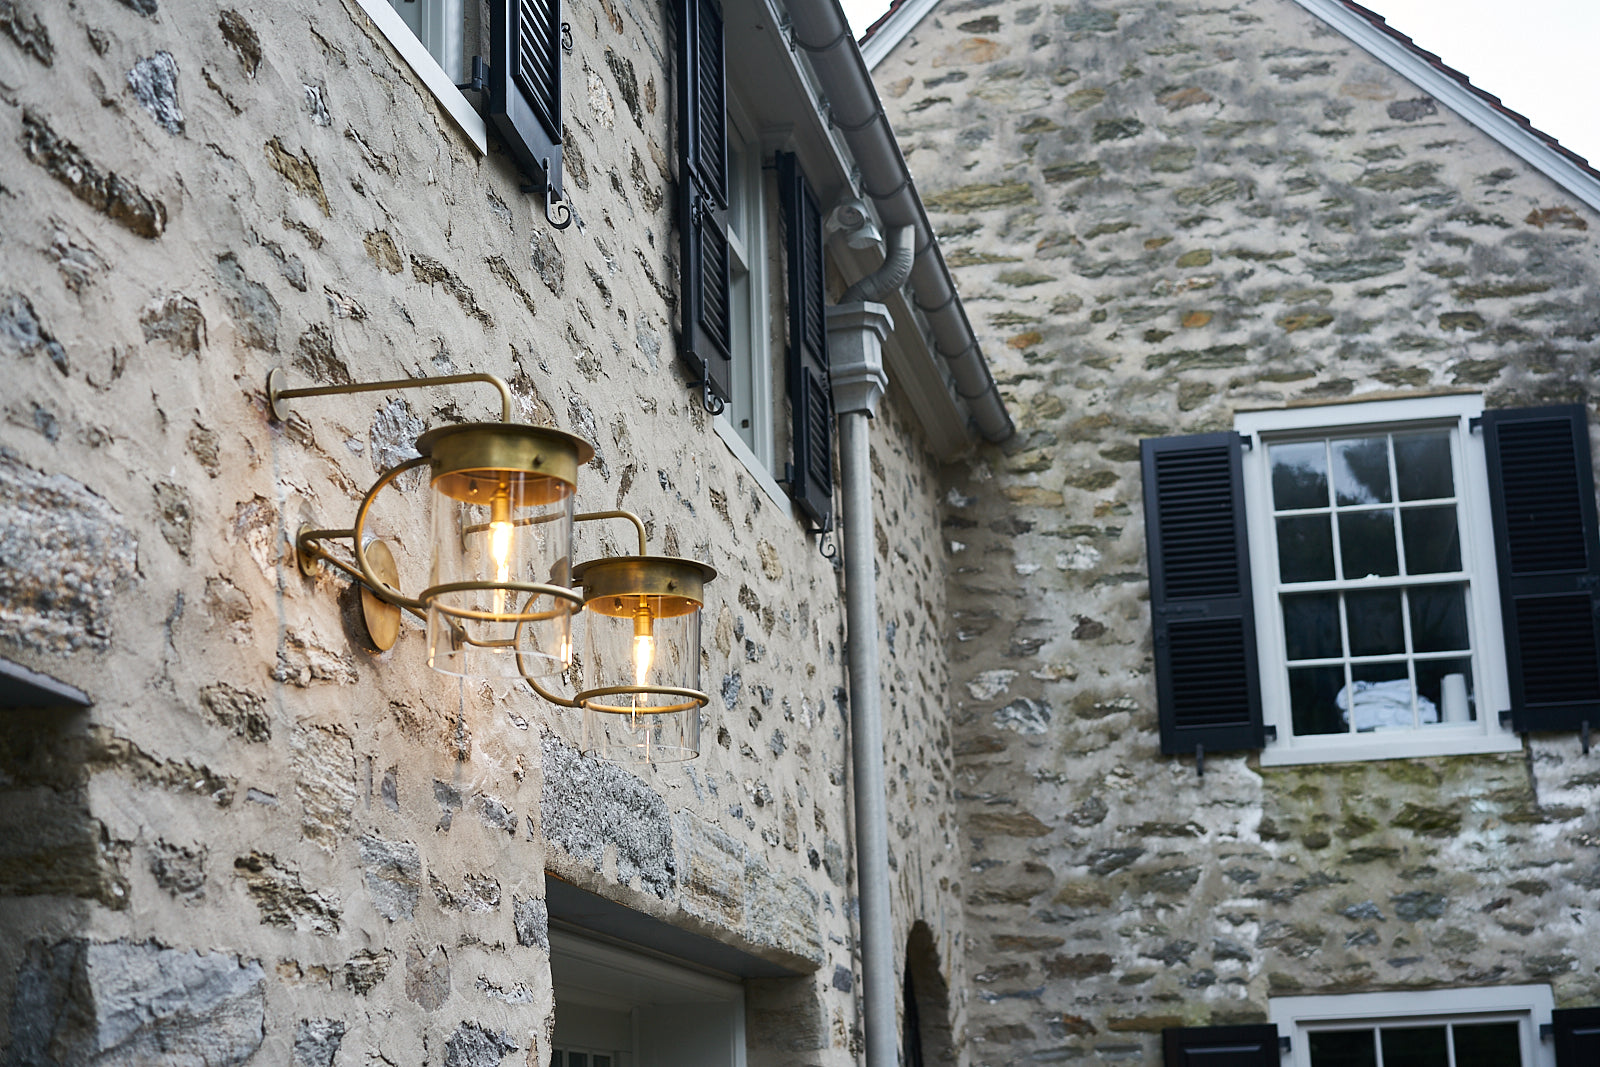 Custom and collection RTO Lighting at a Chestnut Hill Residence. Featuring the Faye Sconce, Emil Sconce, Mia Sconce, Brielle Sconce, and Olivia Sconce.